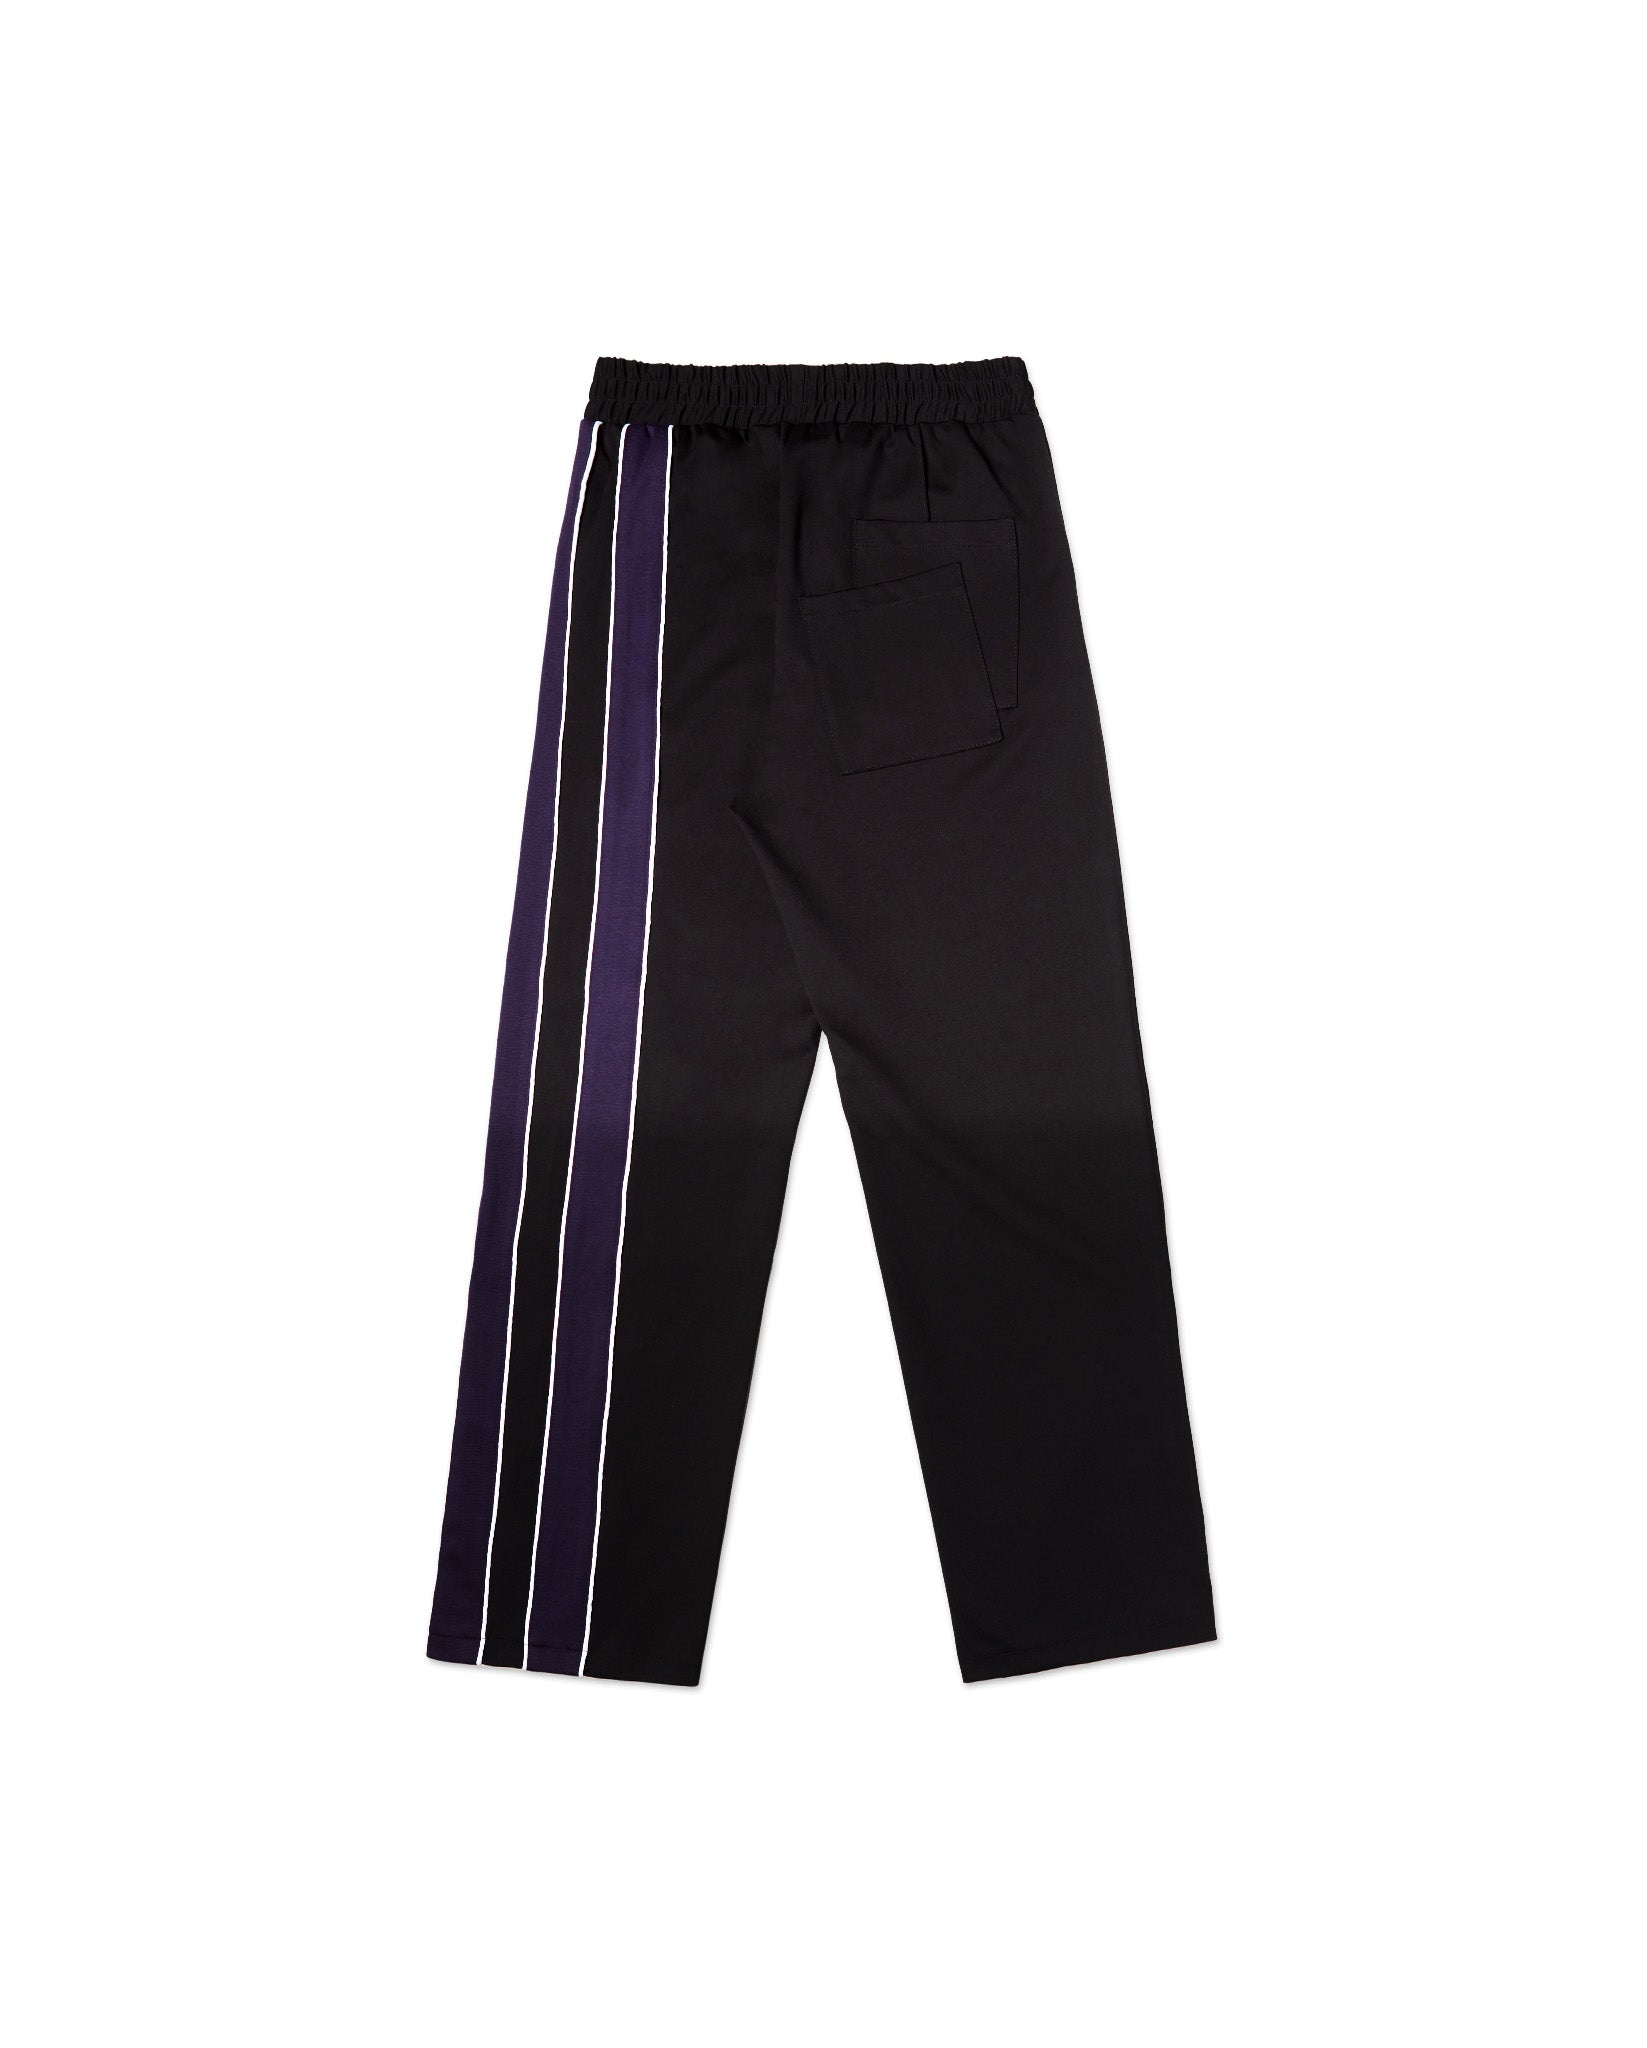 SISHO STRIPES BLACK TRACKPANTS